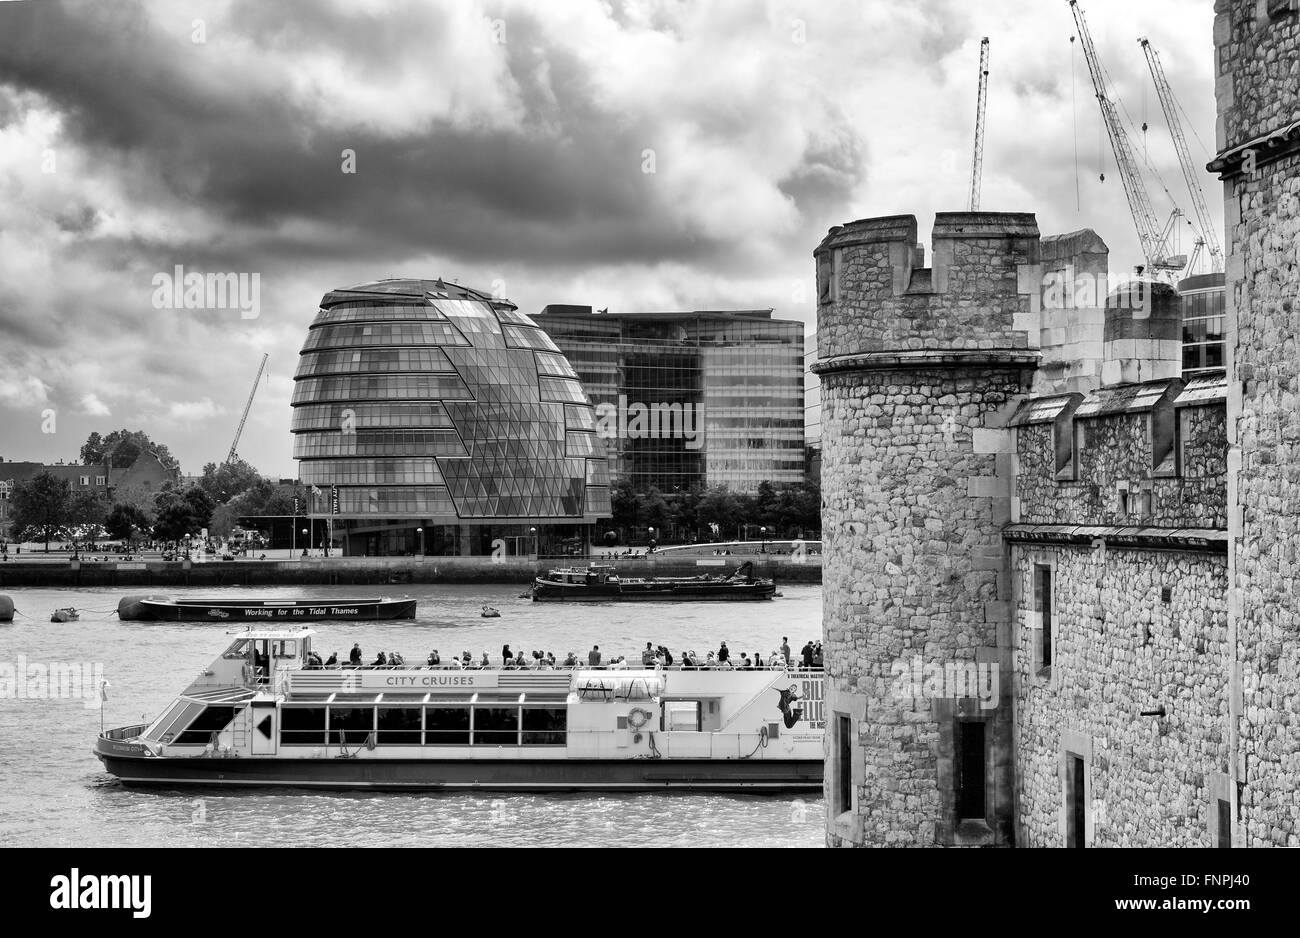 Thames River scene showing London City council offices, tour boat, tower of London on a rainy day in winter - Stock Image